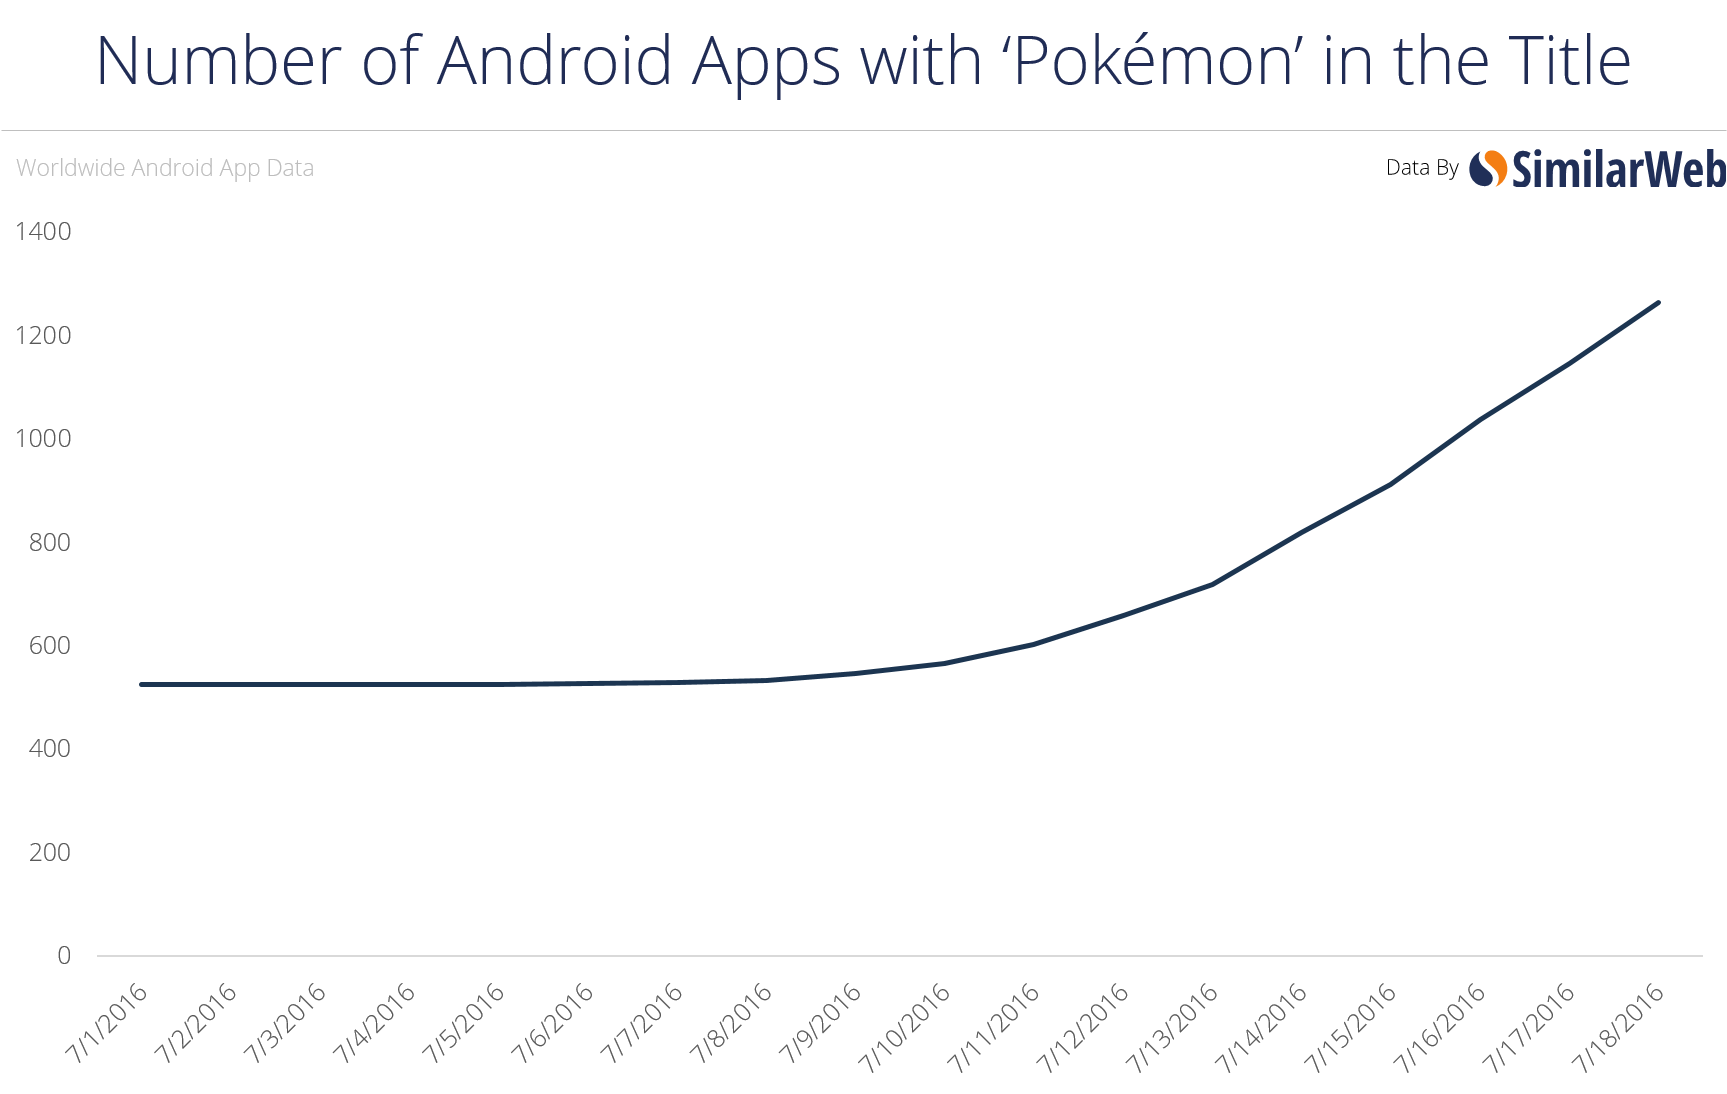 Who are Pokémon GO's Strongest Users?